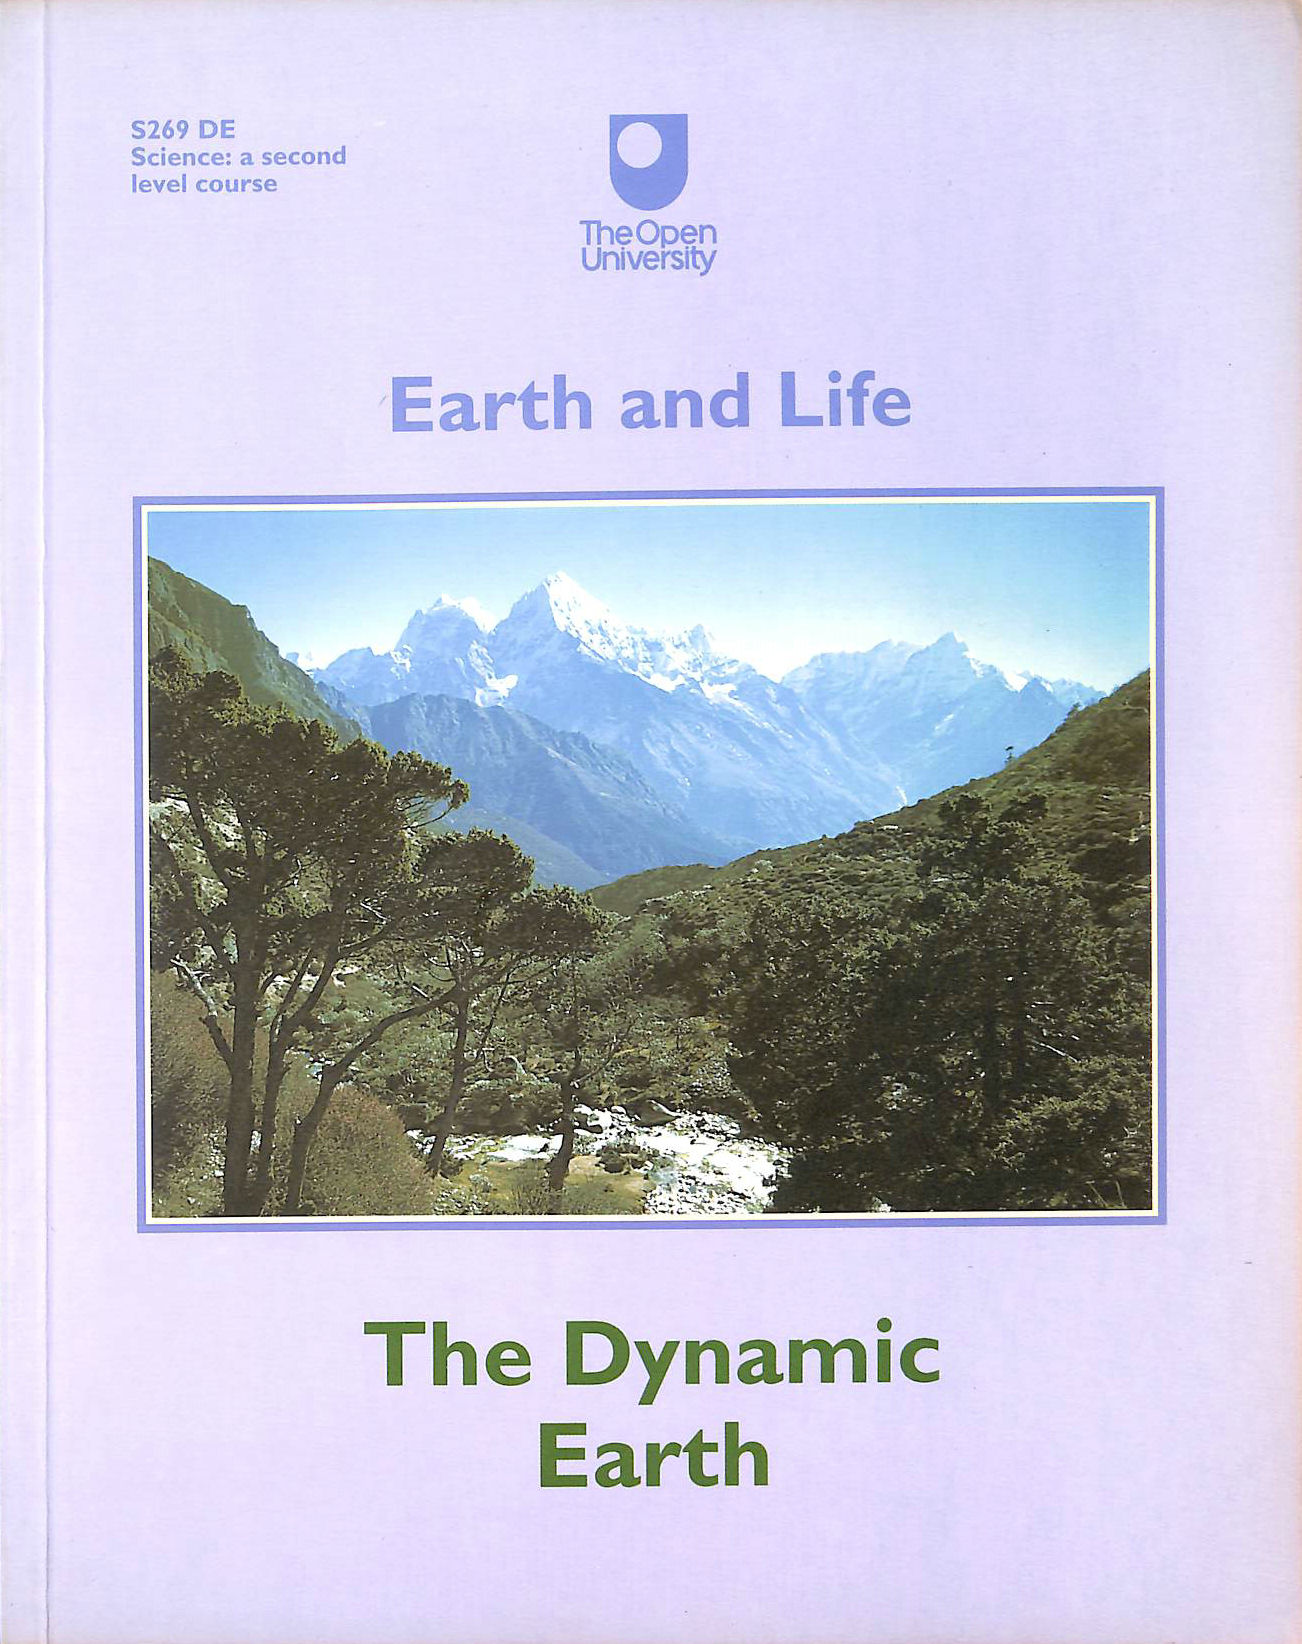 Image for The Earth and Life: The Dynamic Earth (Earth and Life)